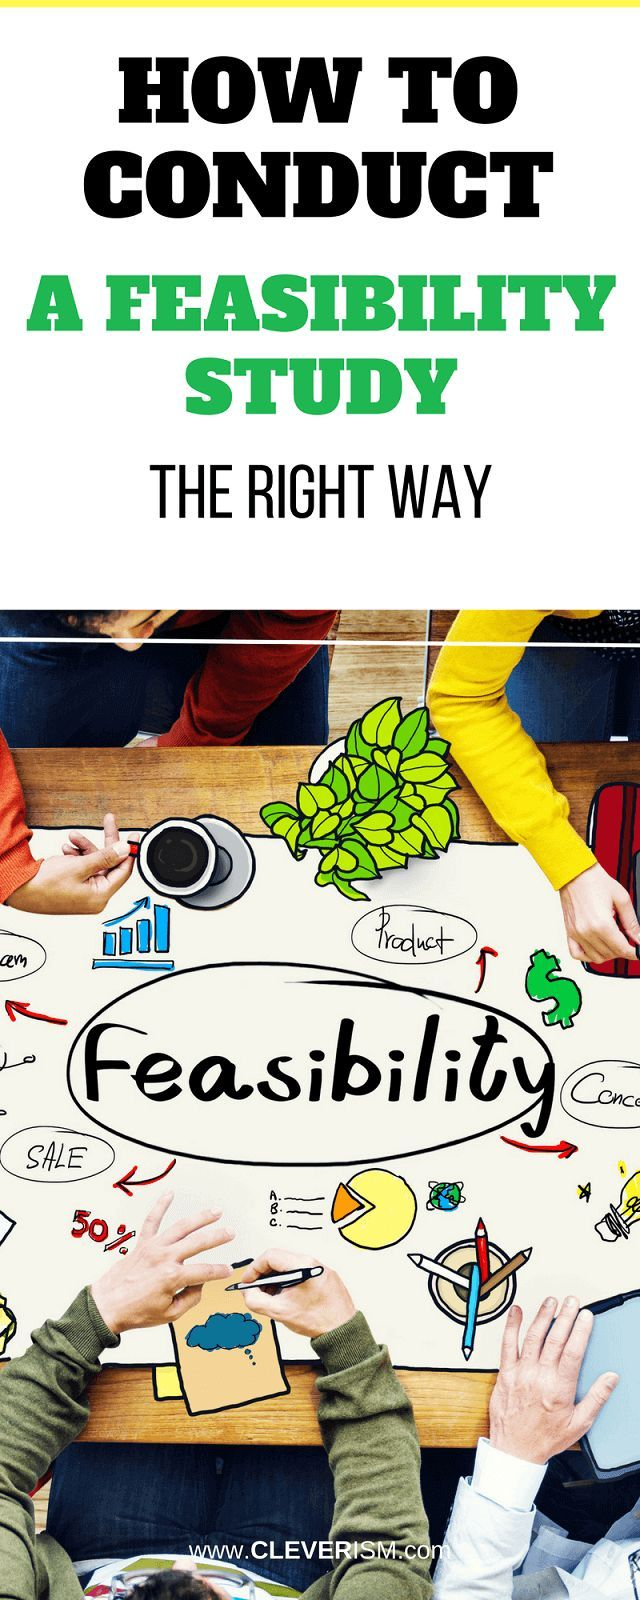 How to Conduct a Feasibility Study the Right Way – Ways to Make $